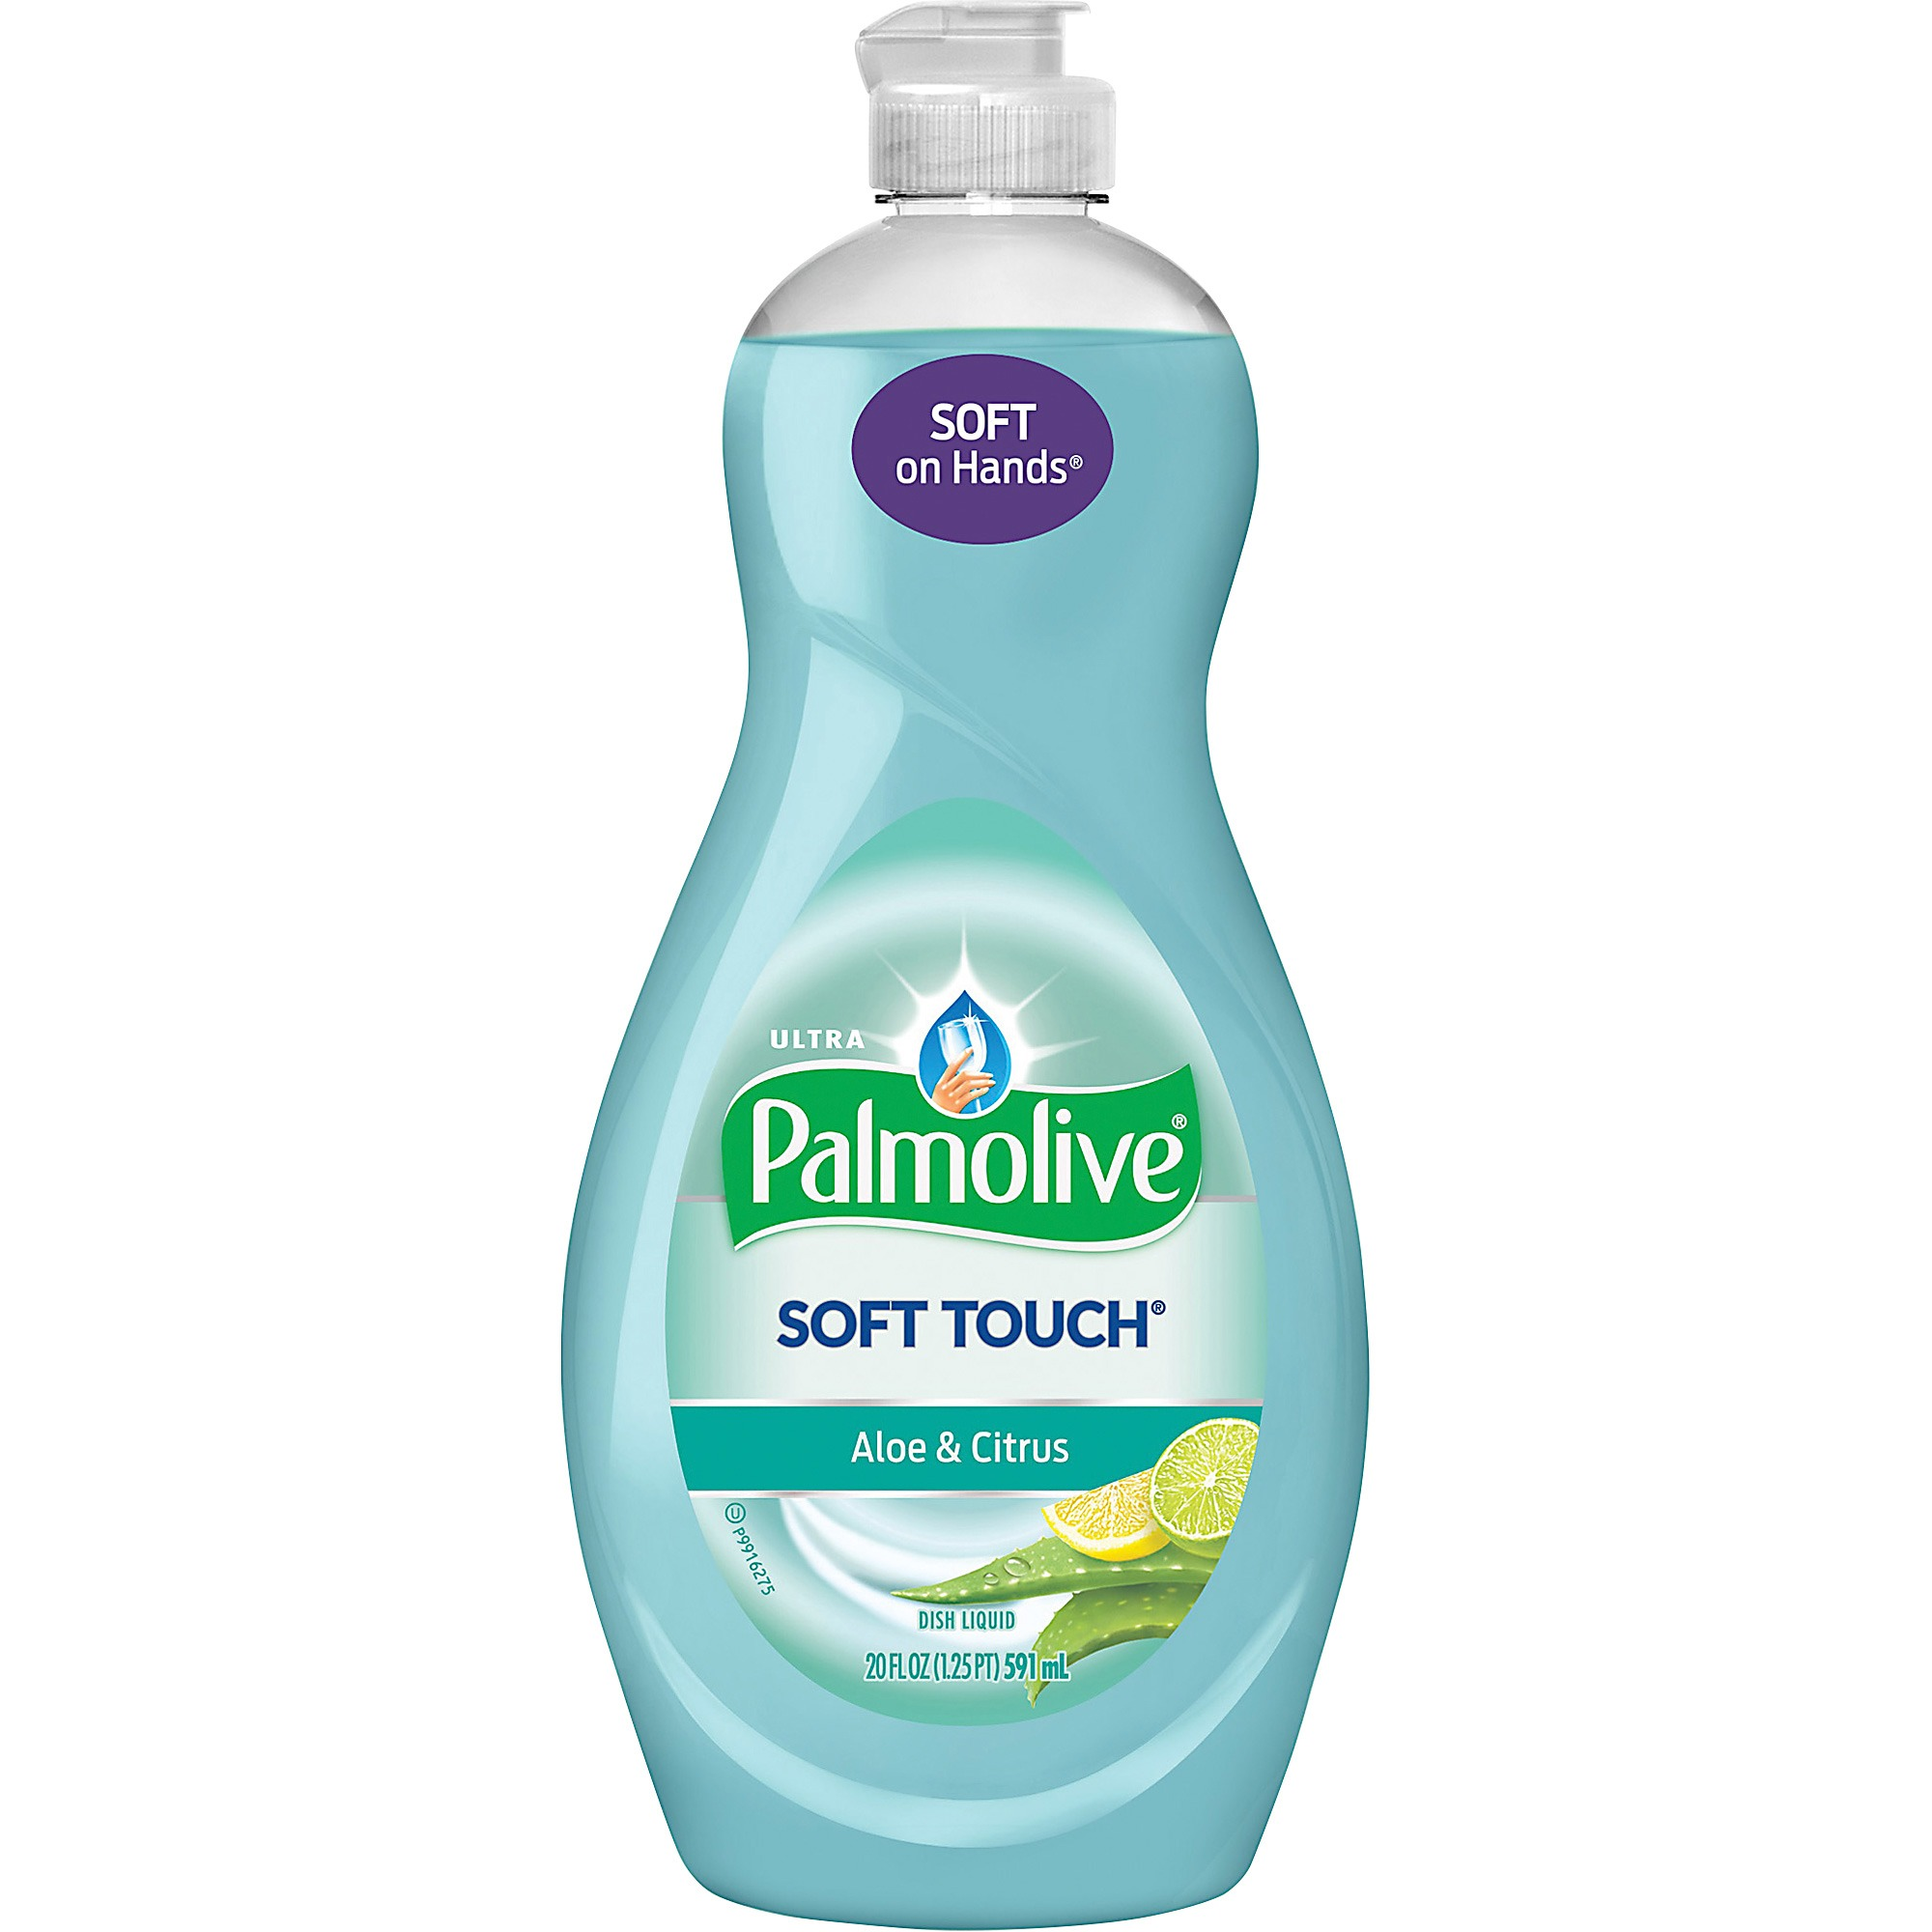 Palmolive Ultra Soft Touch Dish Soap, Aloe and Citrus - 20 fl oz